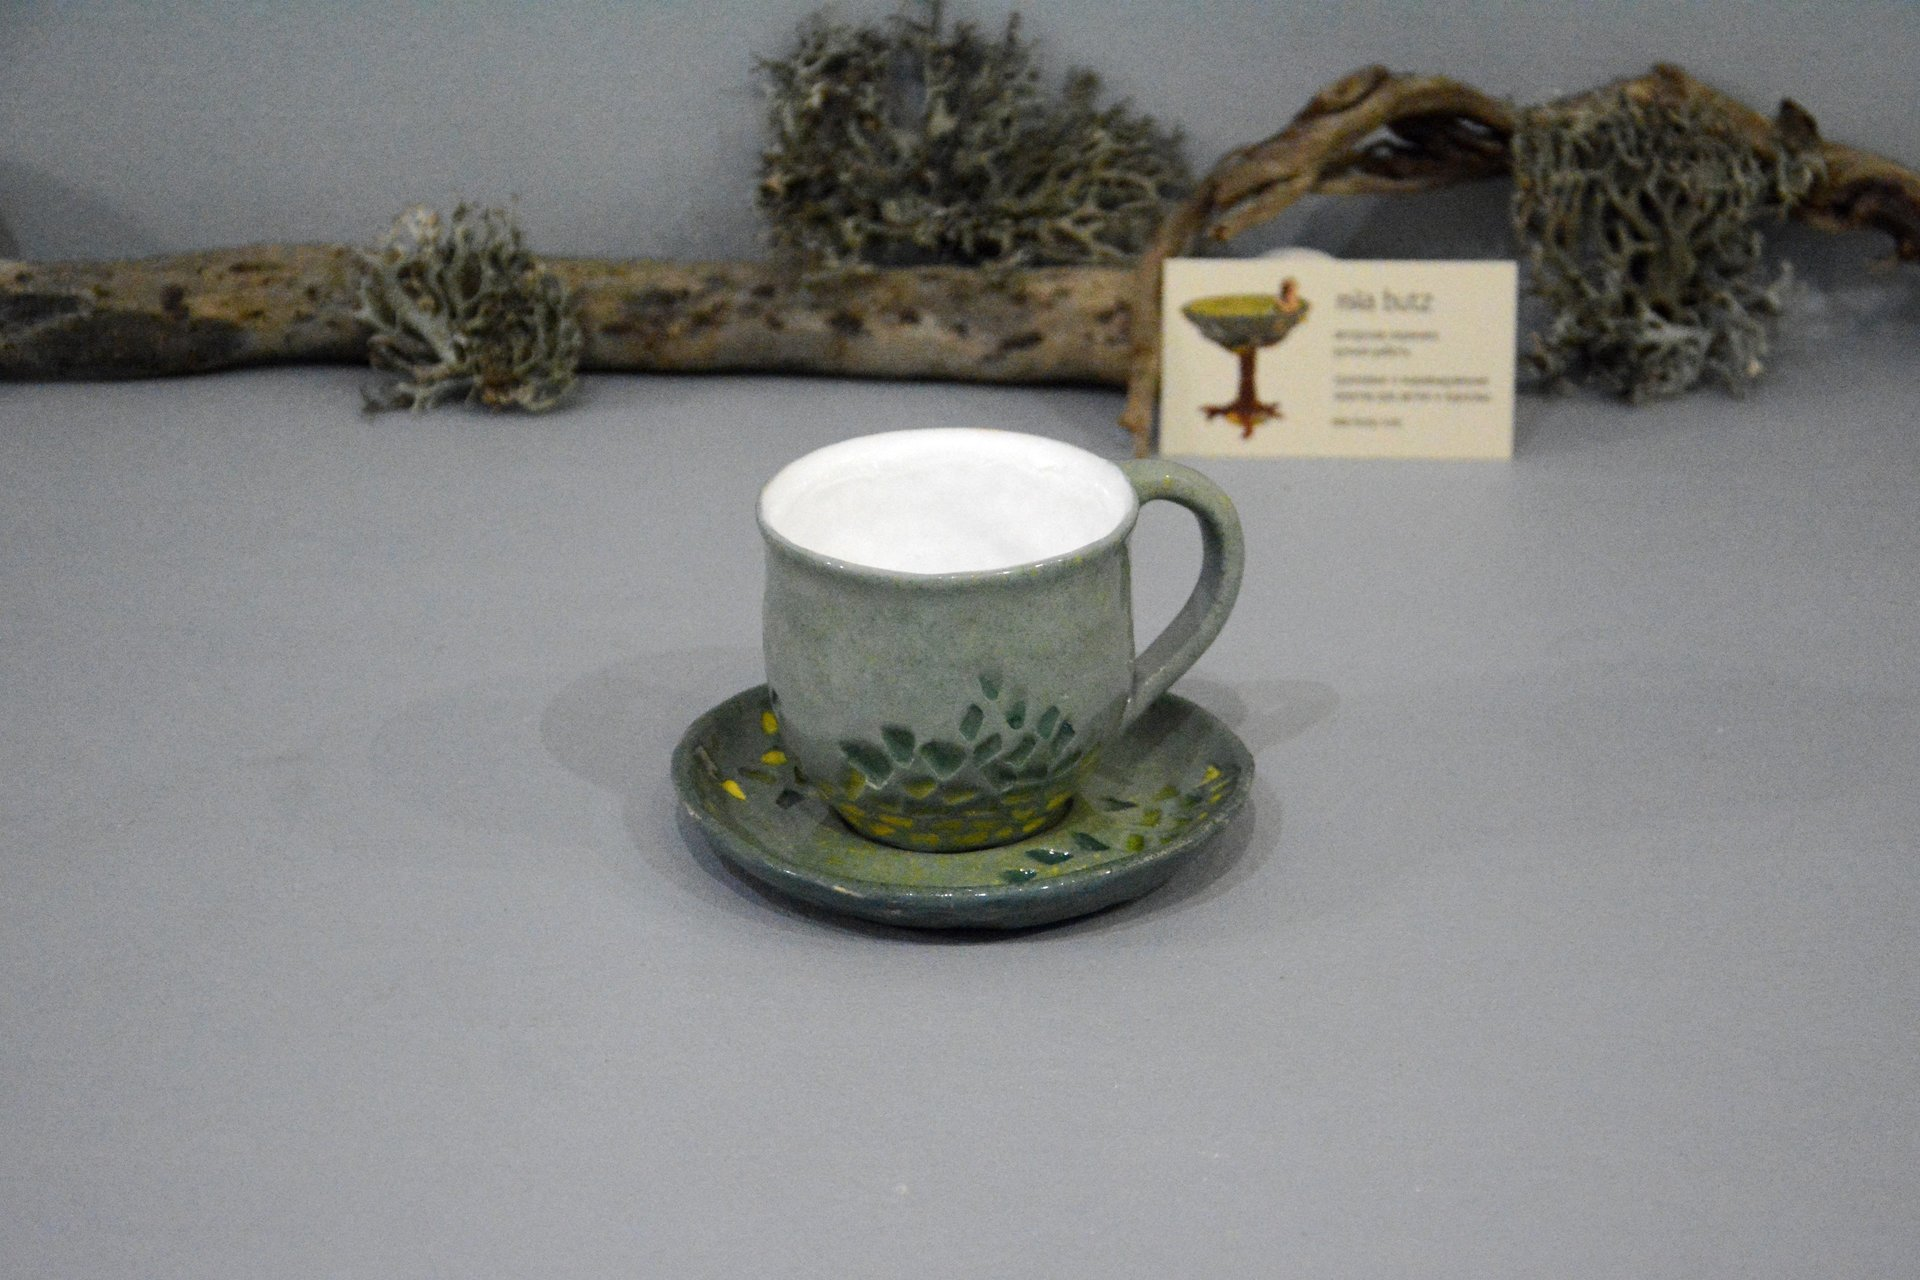 Gray cup for tea or coffee, height - 7 cm, volume - 220 ml, photo 5 of 8.